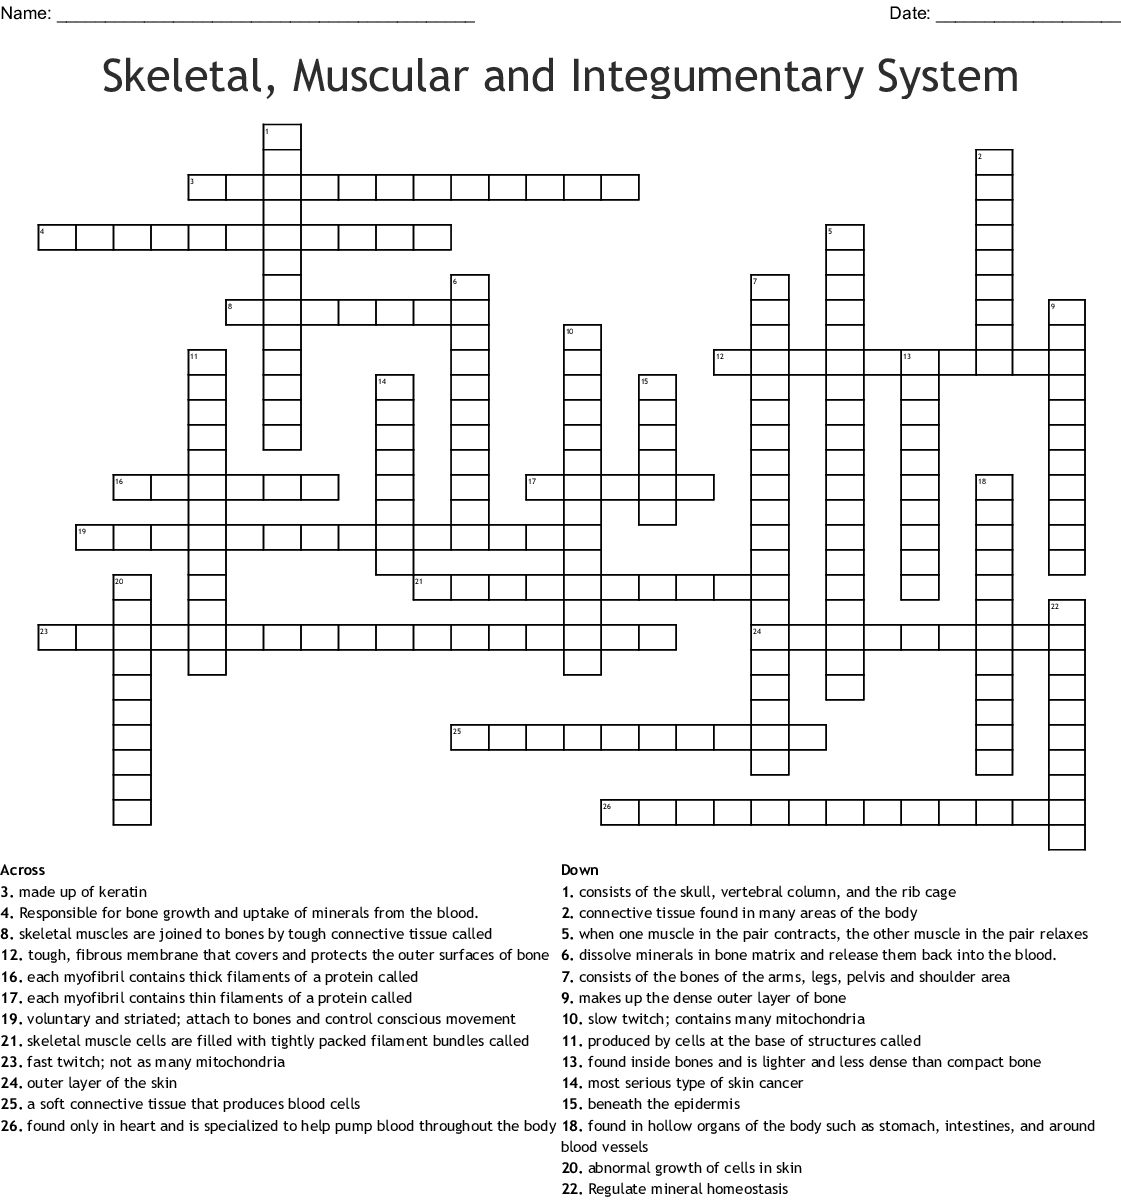 Skeletal Muscular And Integumentary System Crossword